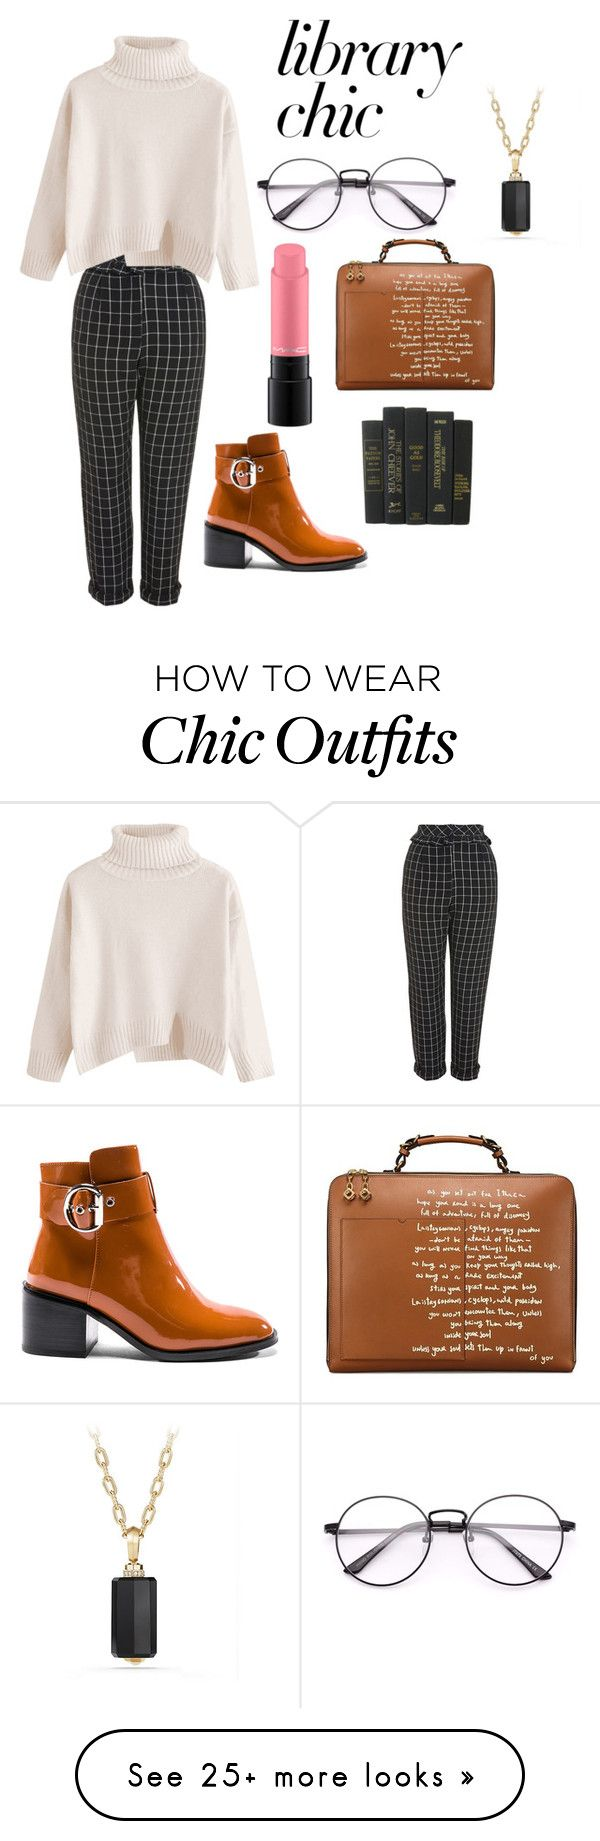 """chic look"" by lassh on Polyvore featuring Topshop, Tory Burch, Jeffrey Campbell, David Yurman and MAC Cosmetics"